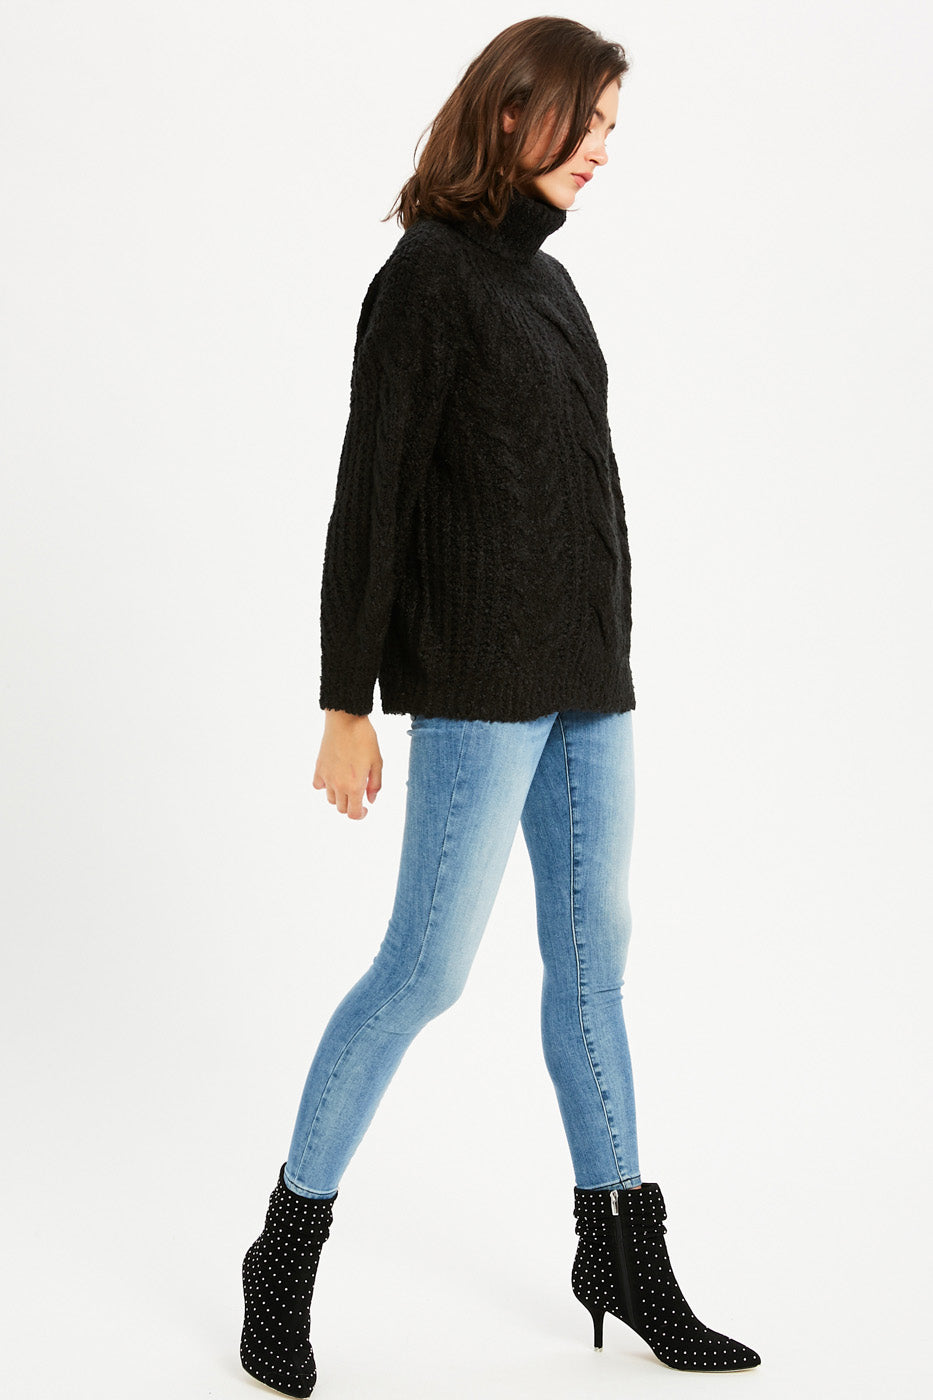 Chunky Cable Knit Turtleneck Pullover - Black